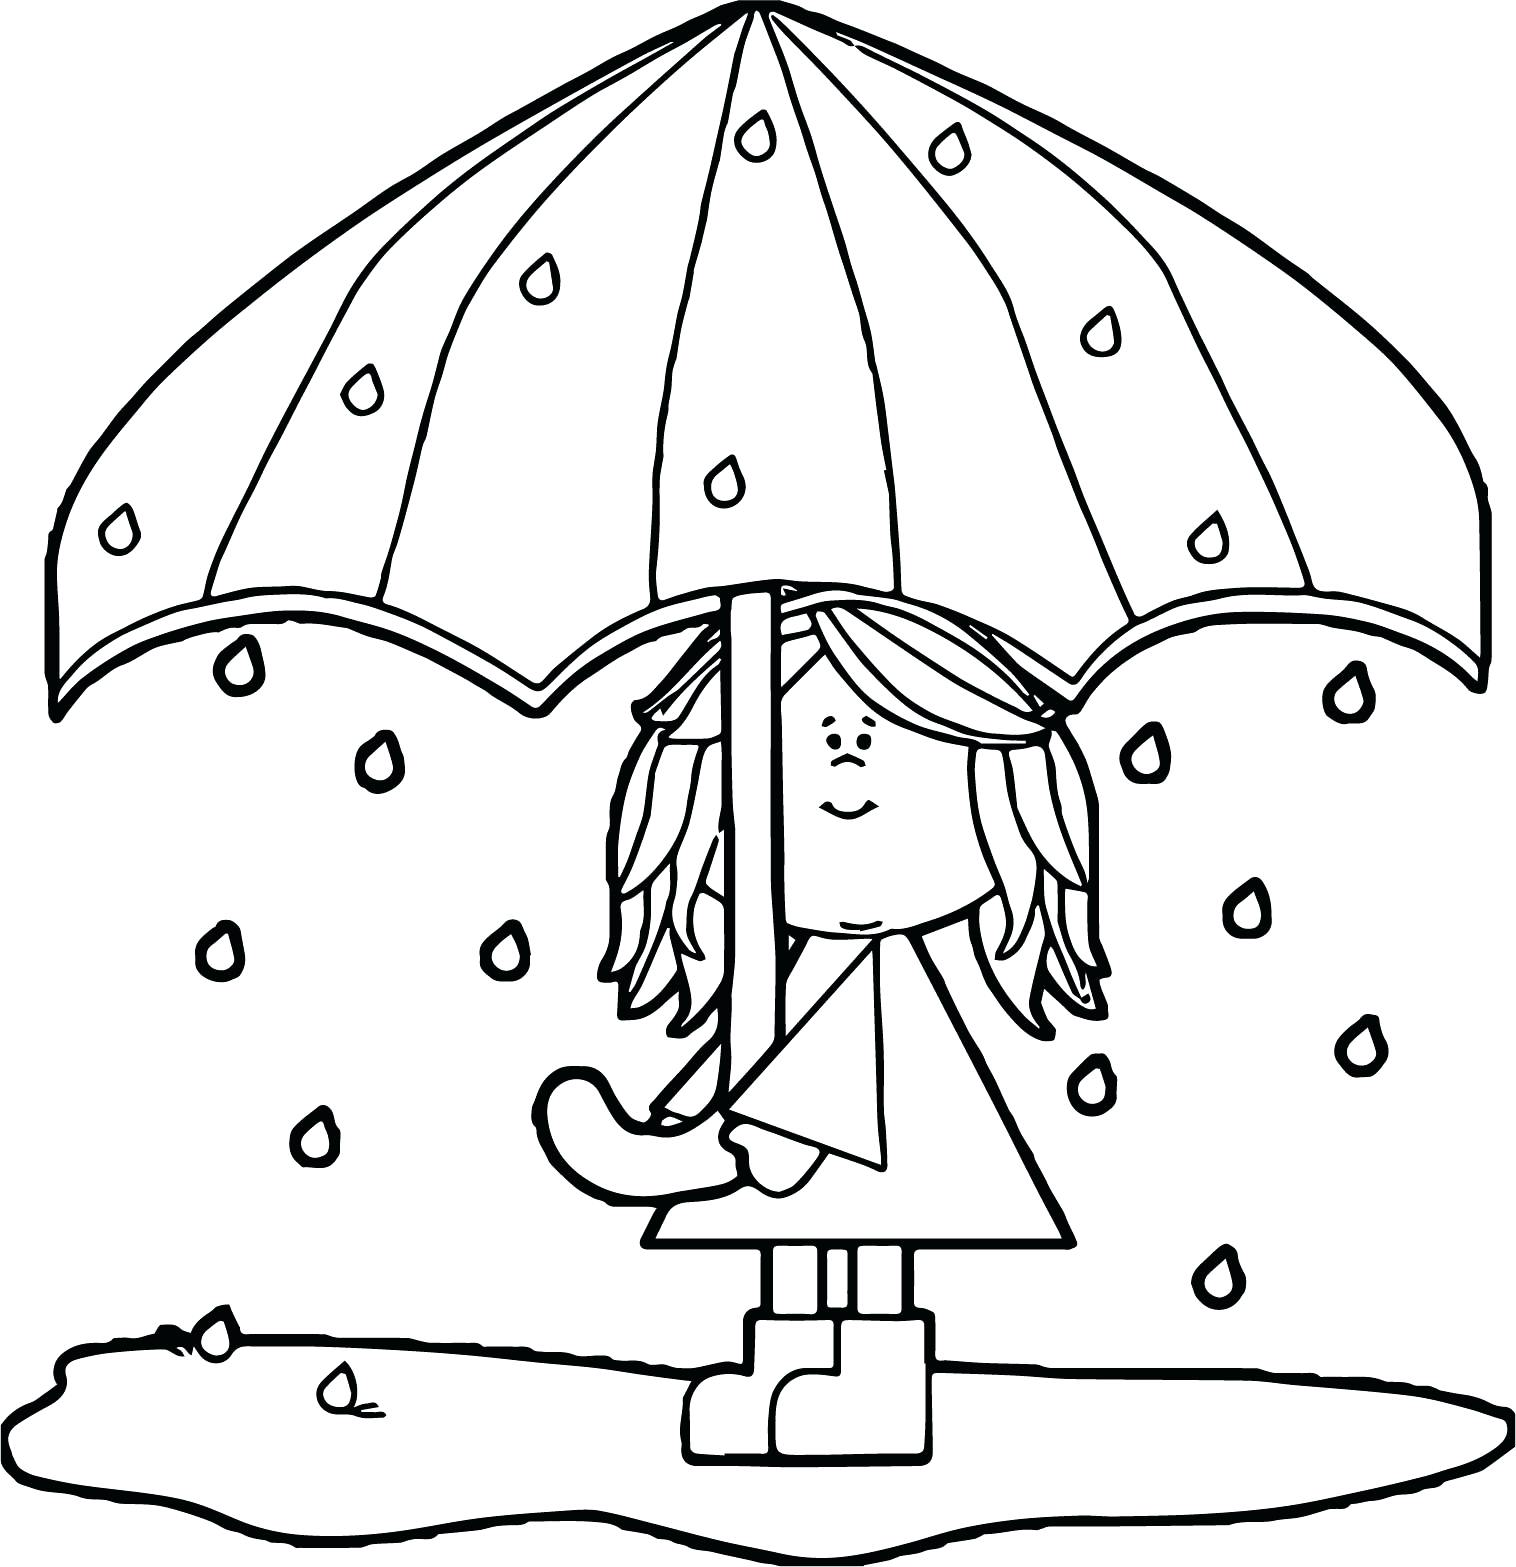 1516x1567 Inspiration Coloring Pages Umbrella Coloring Page Vector